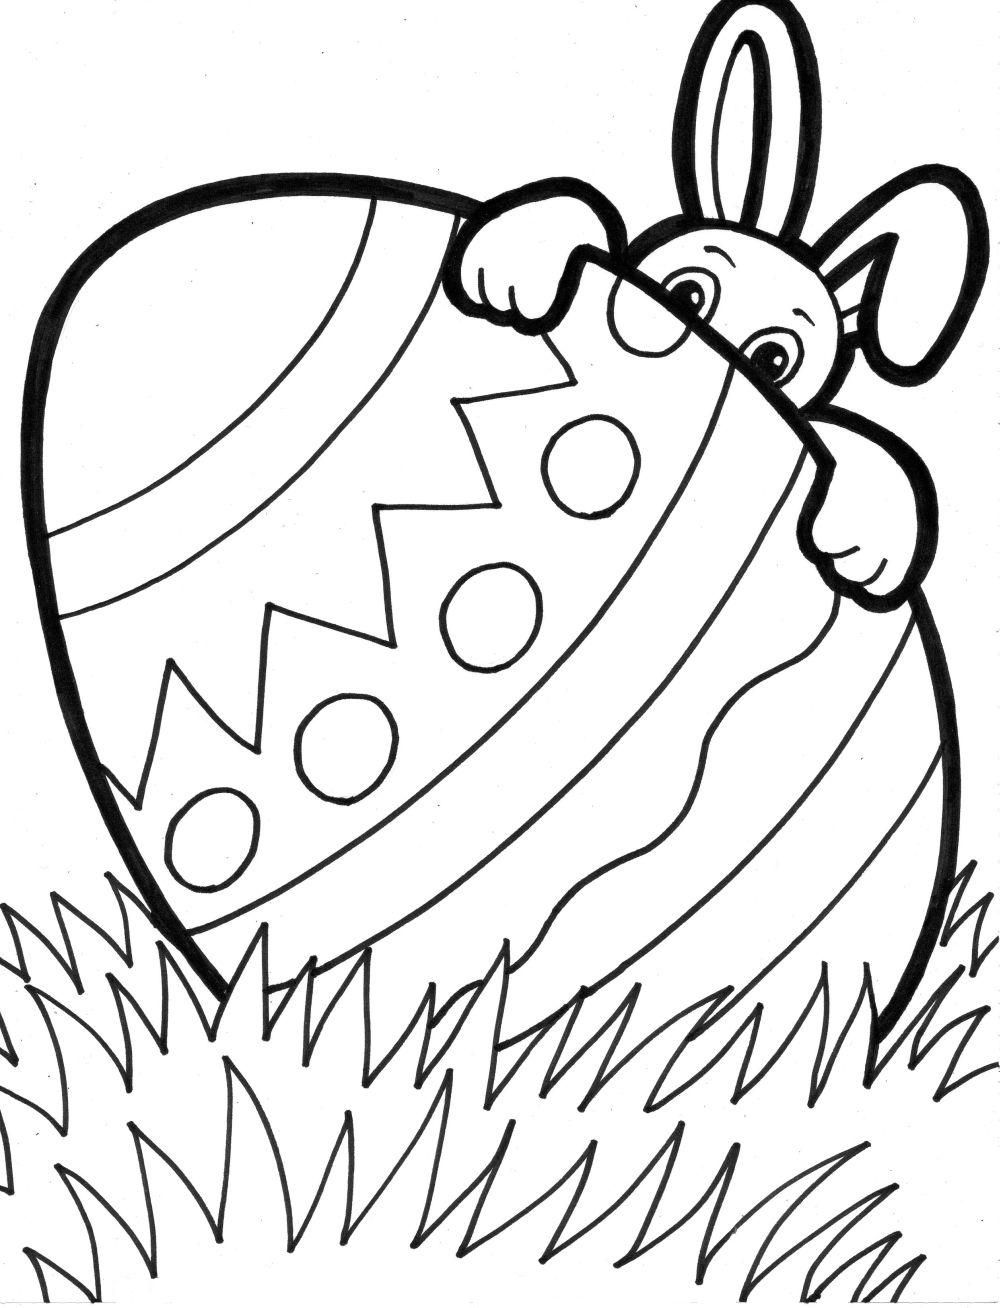 best 25 easter coloring pages ideas on pinterest easter colors free easter coloring pages and easter coloring pages printable